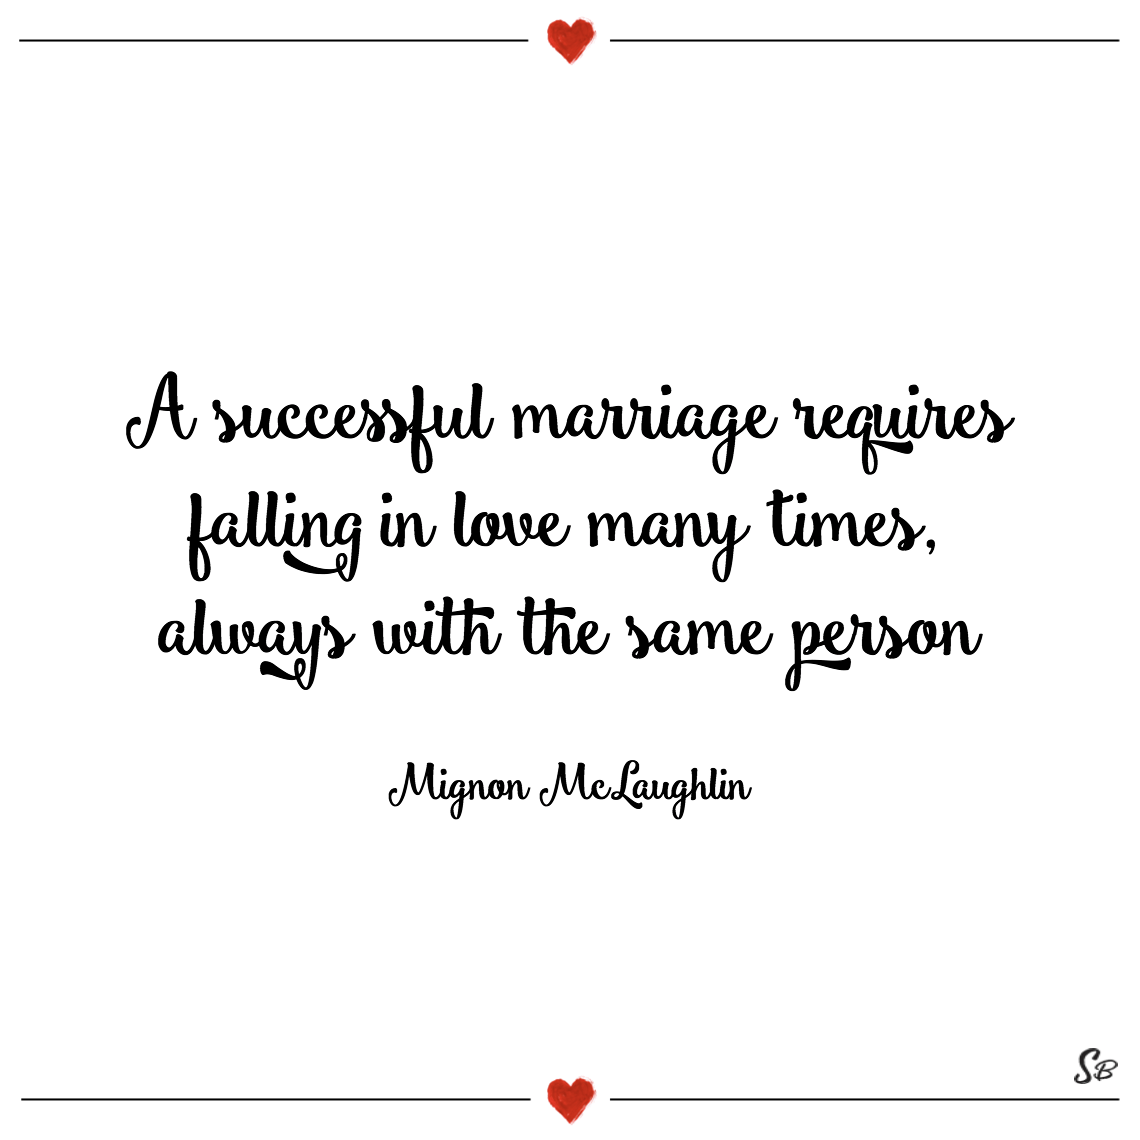 A successful marriage requires falling in love many times always with the same person mignon